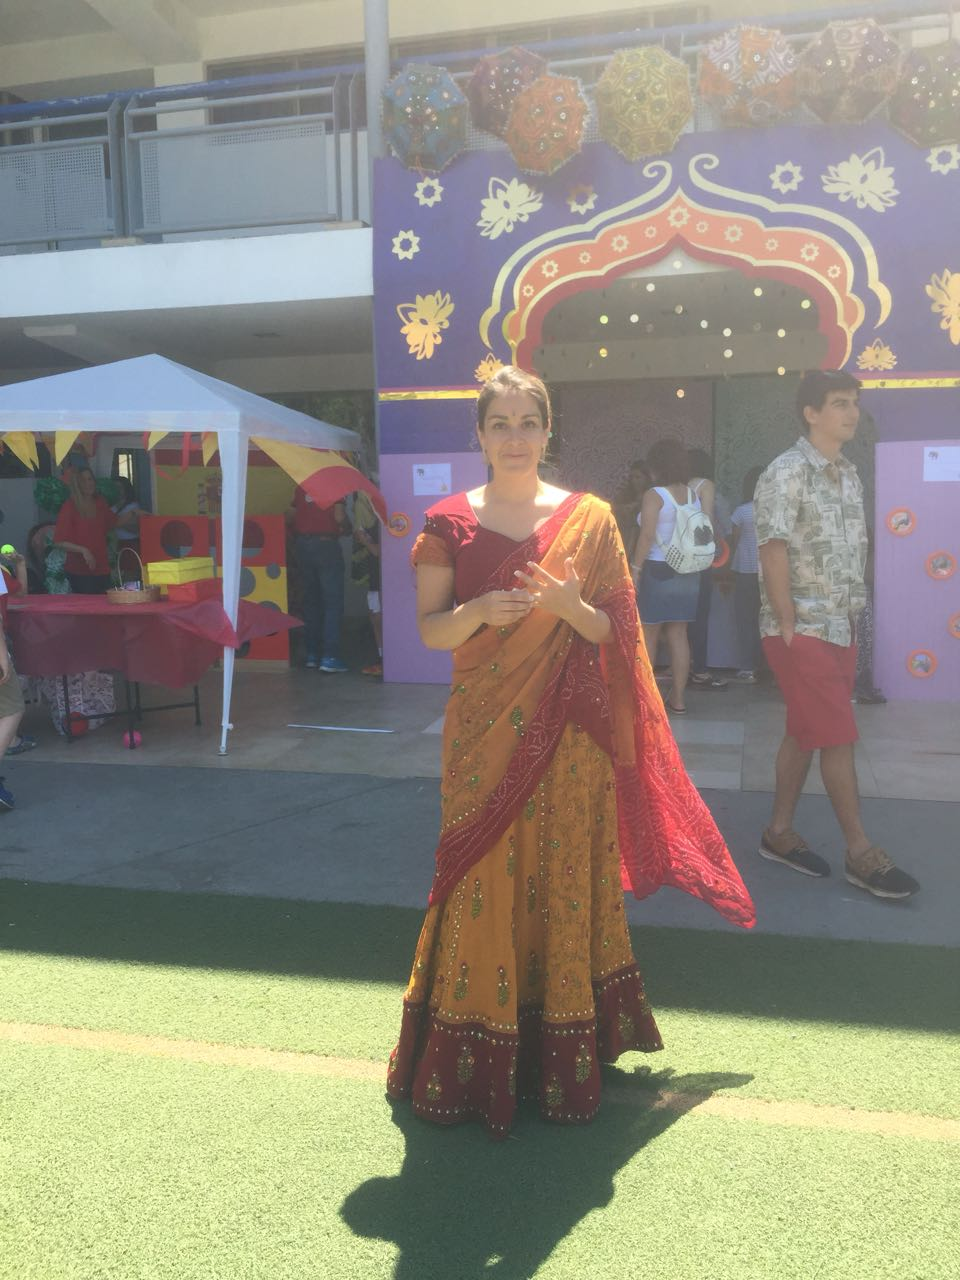 Kermesse: Stand India